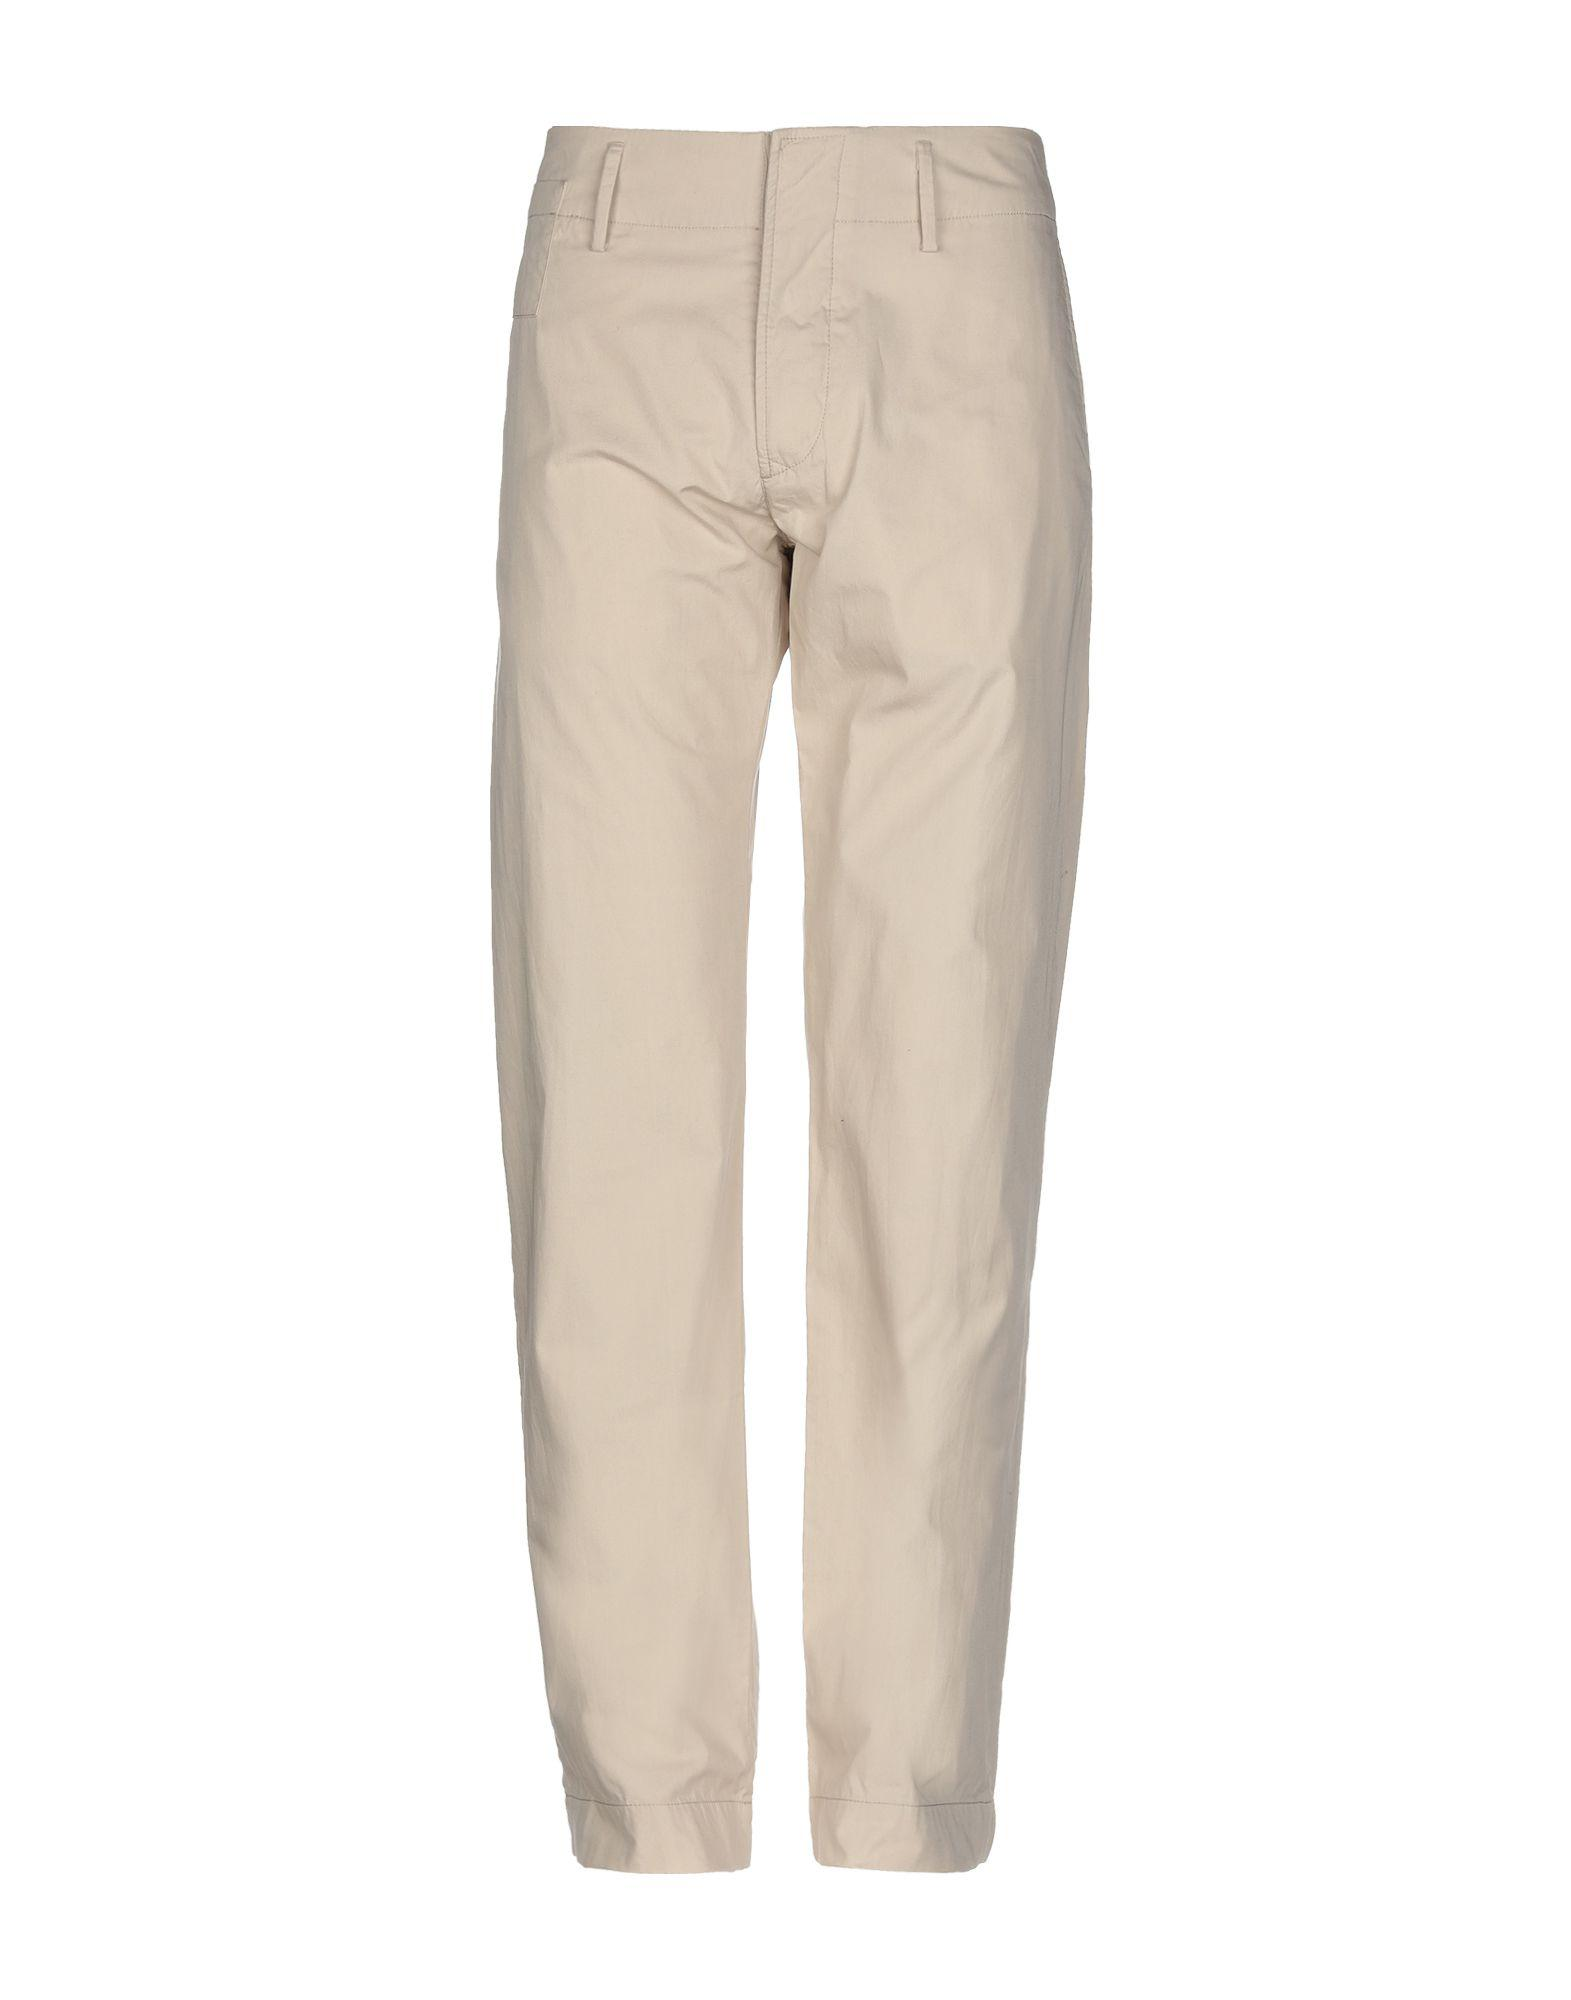 2ada15de3e38 peachoo-krejberg-Light-grey-Casual-Pants.jpeg